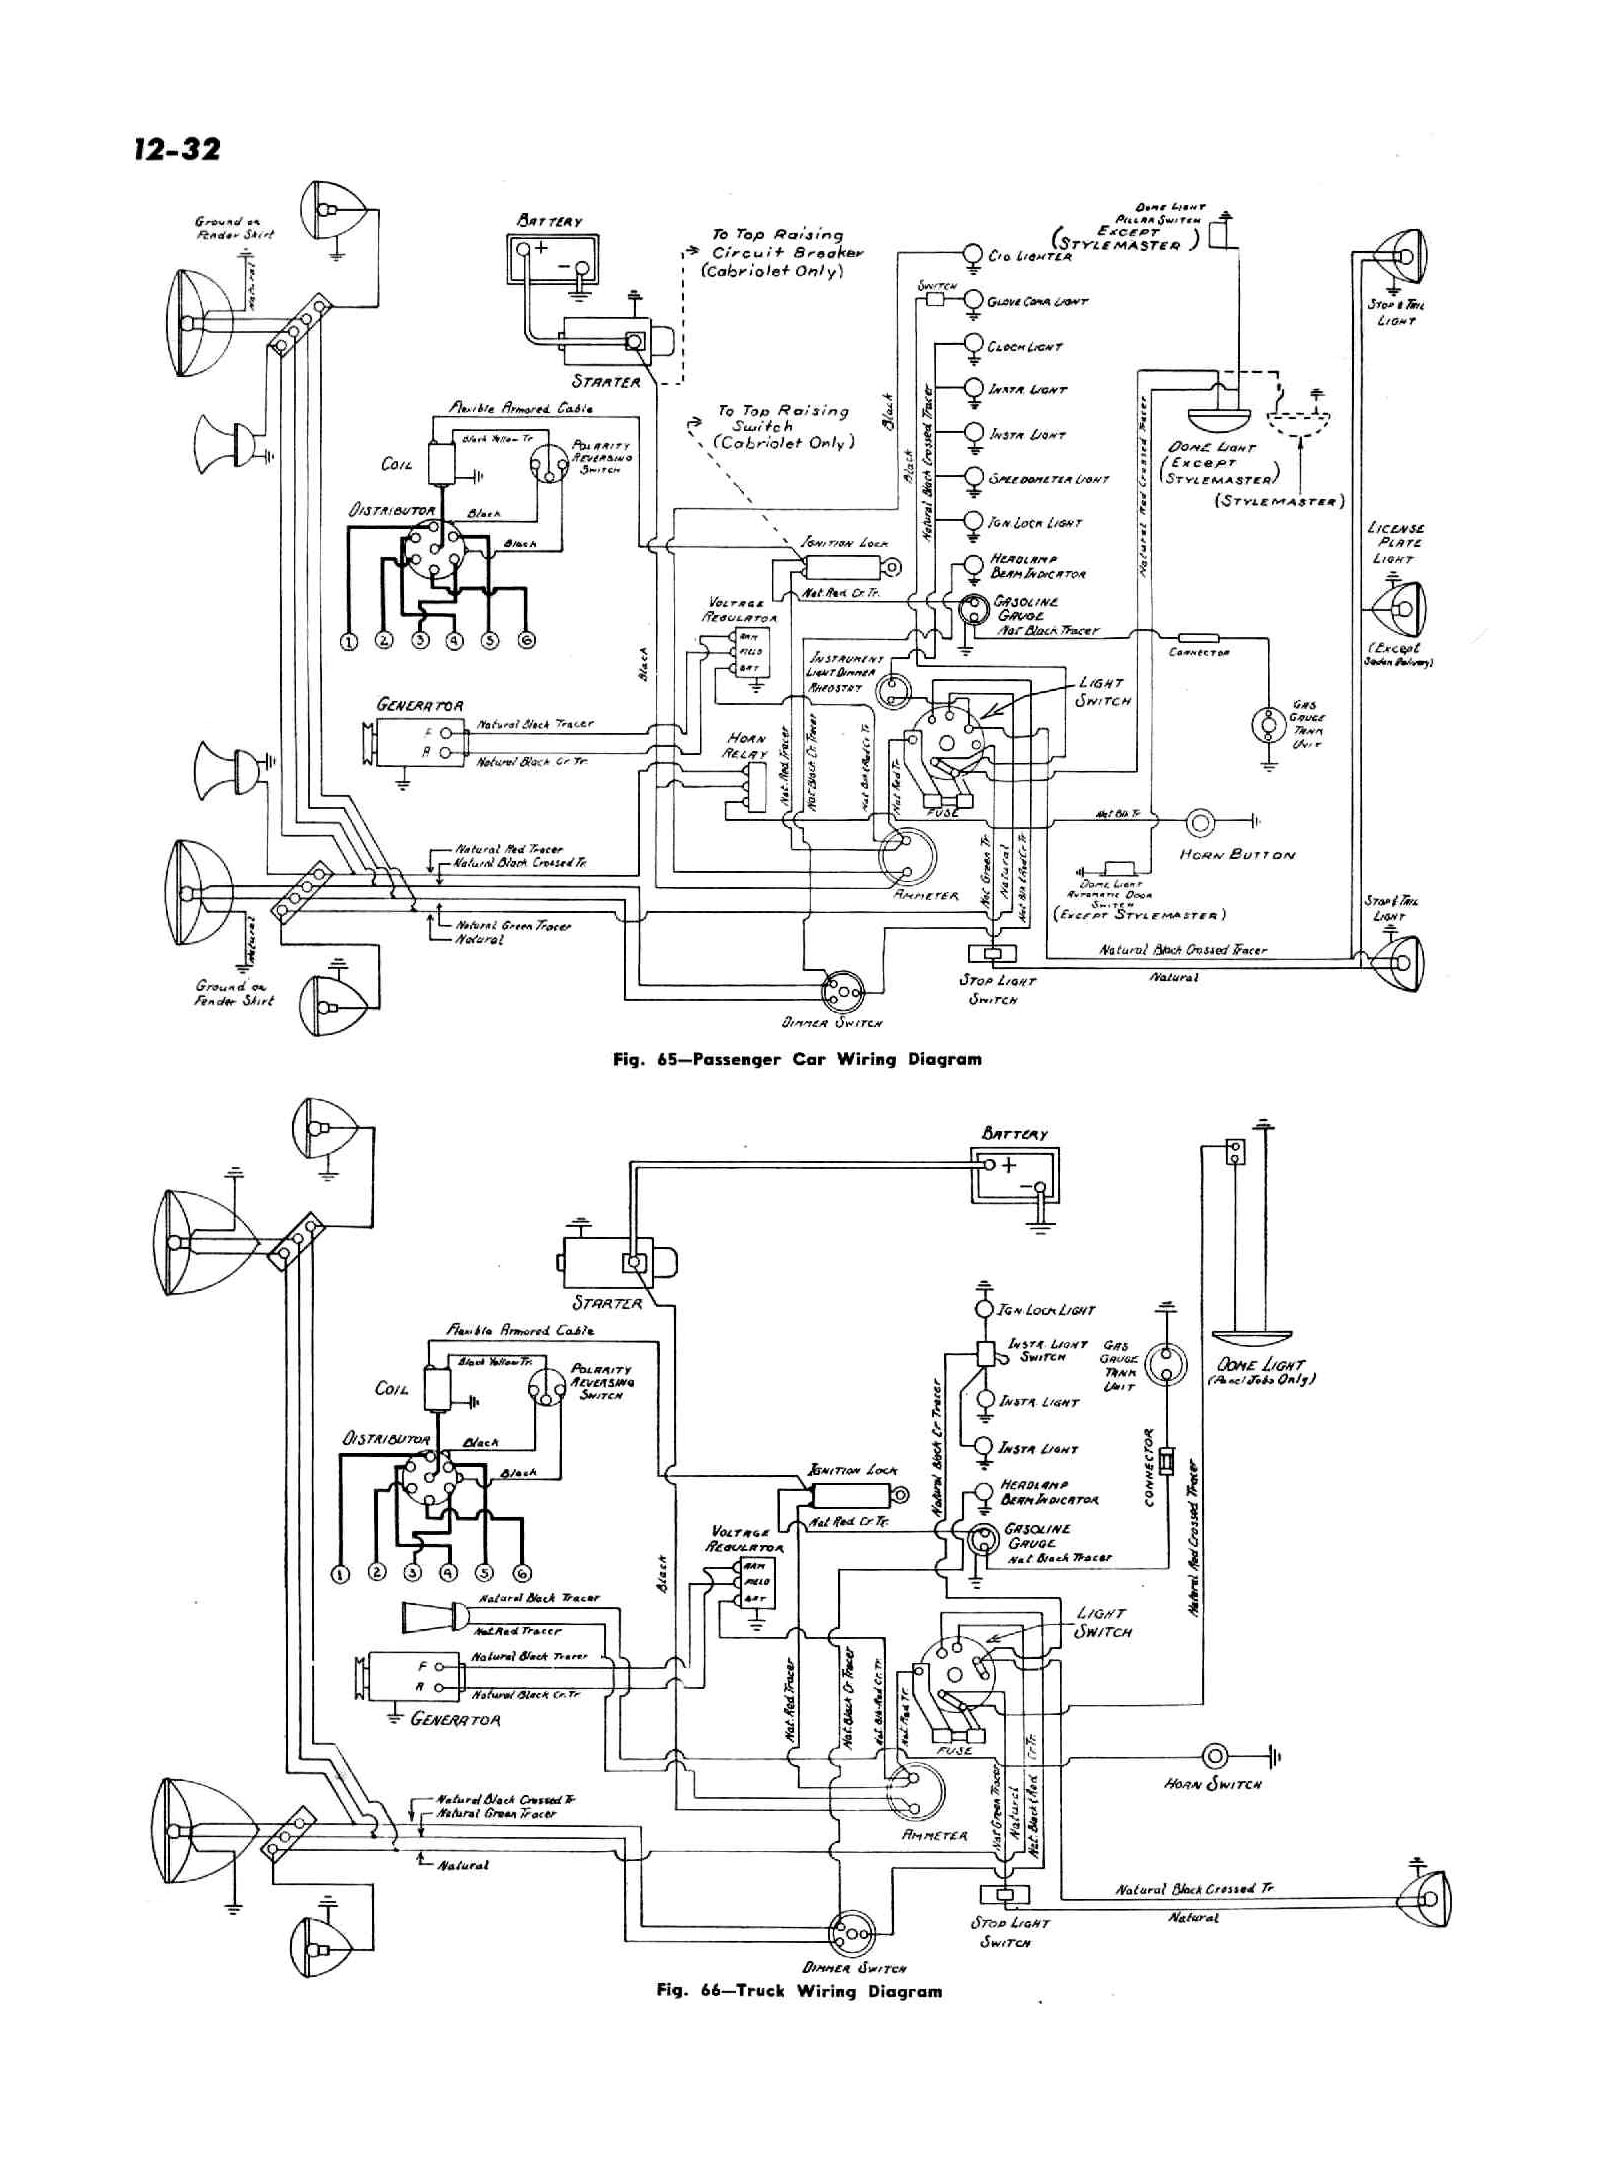 4247csm1232 chevy wiring diagrams Wiring Schematics for Johnson Outboards at suagrazia.org